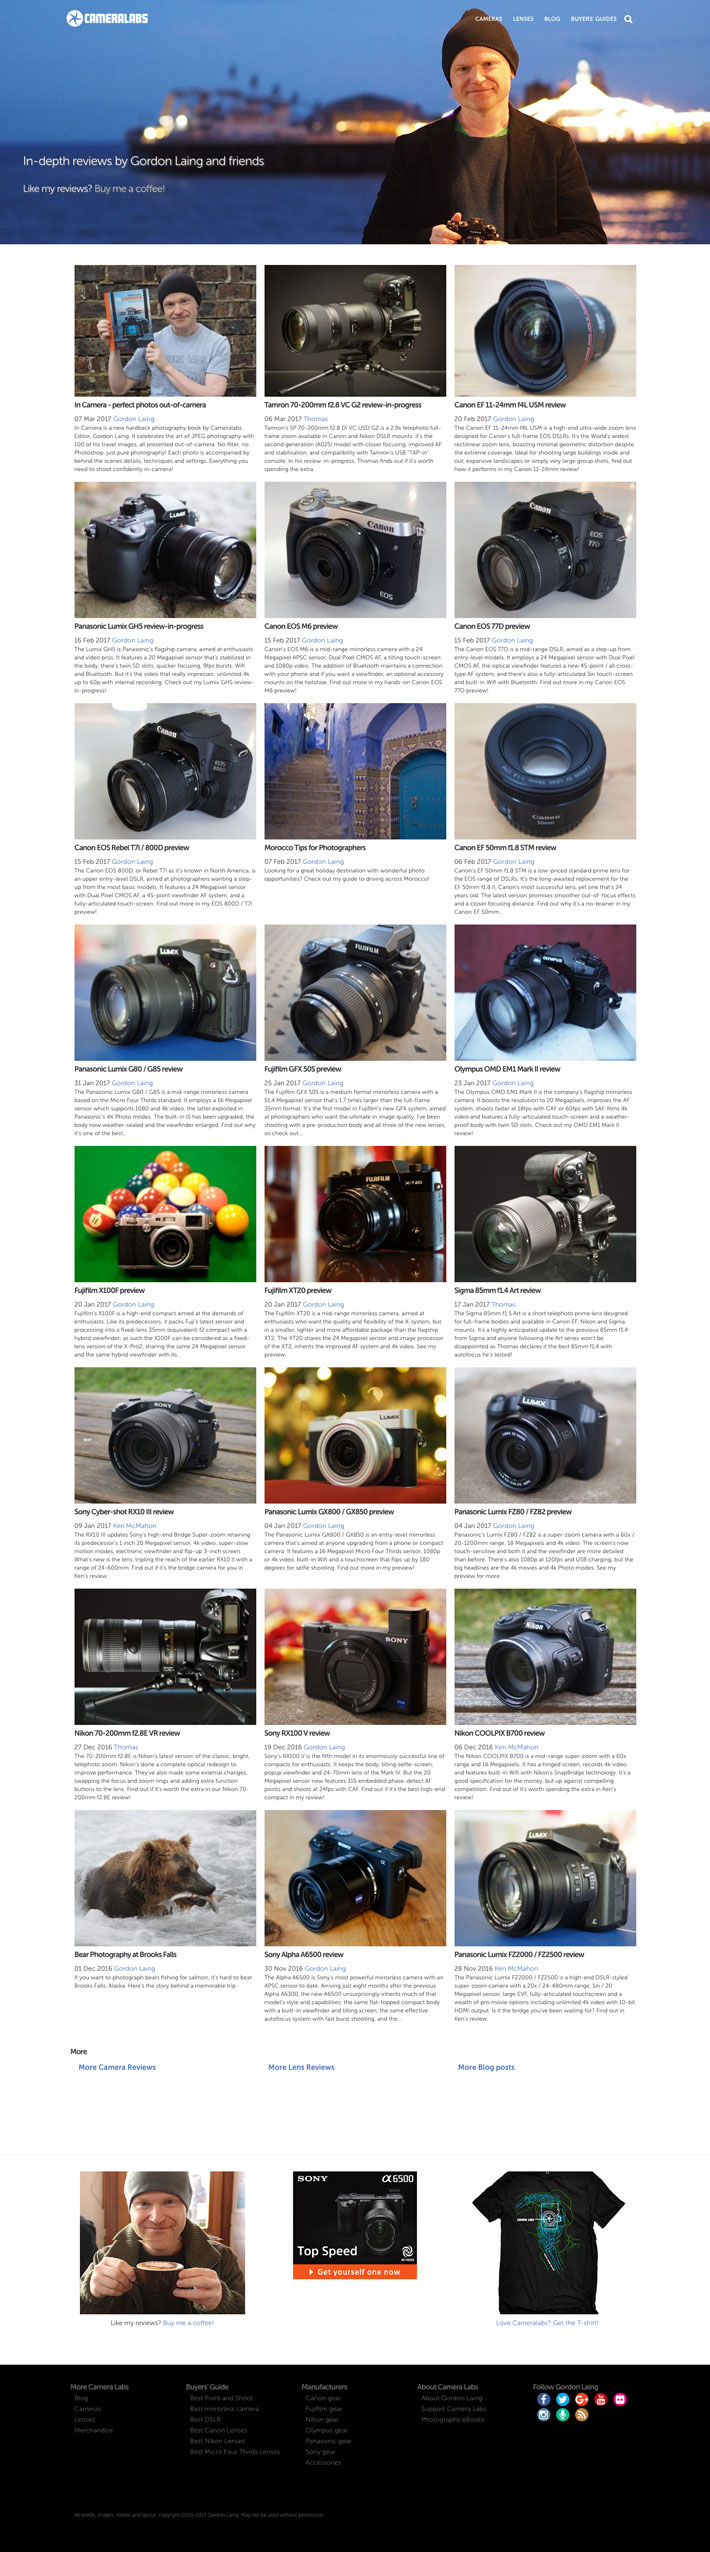 cameralabs.com website homepage